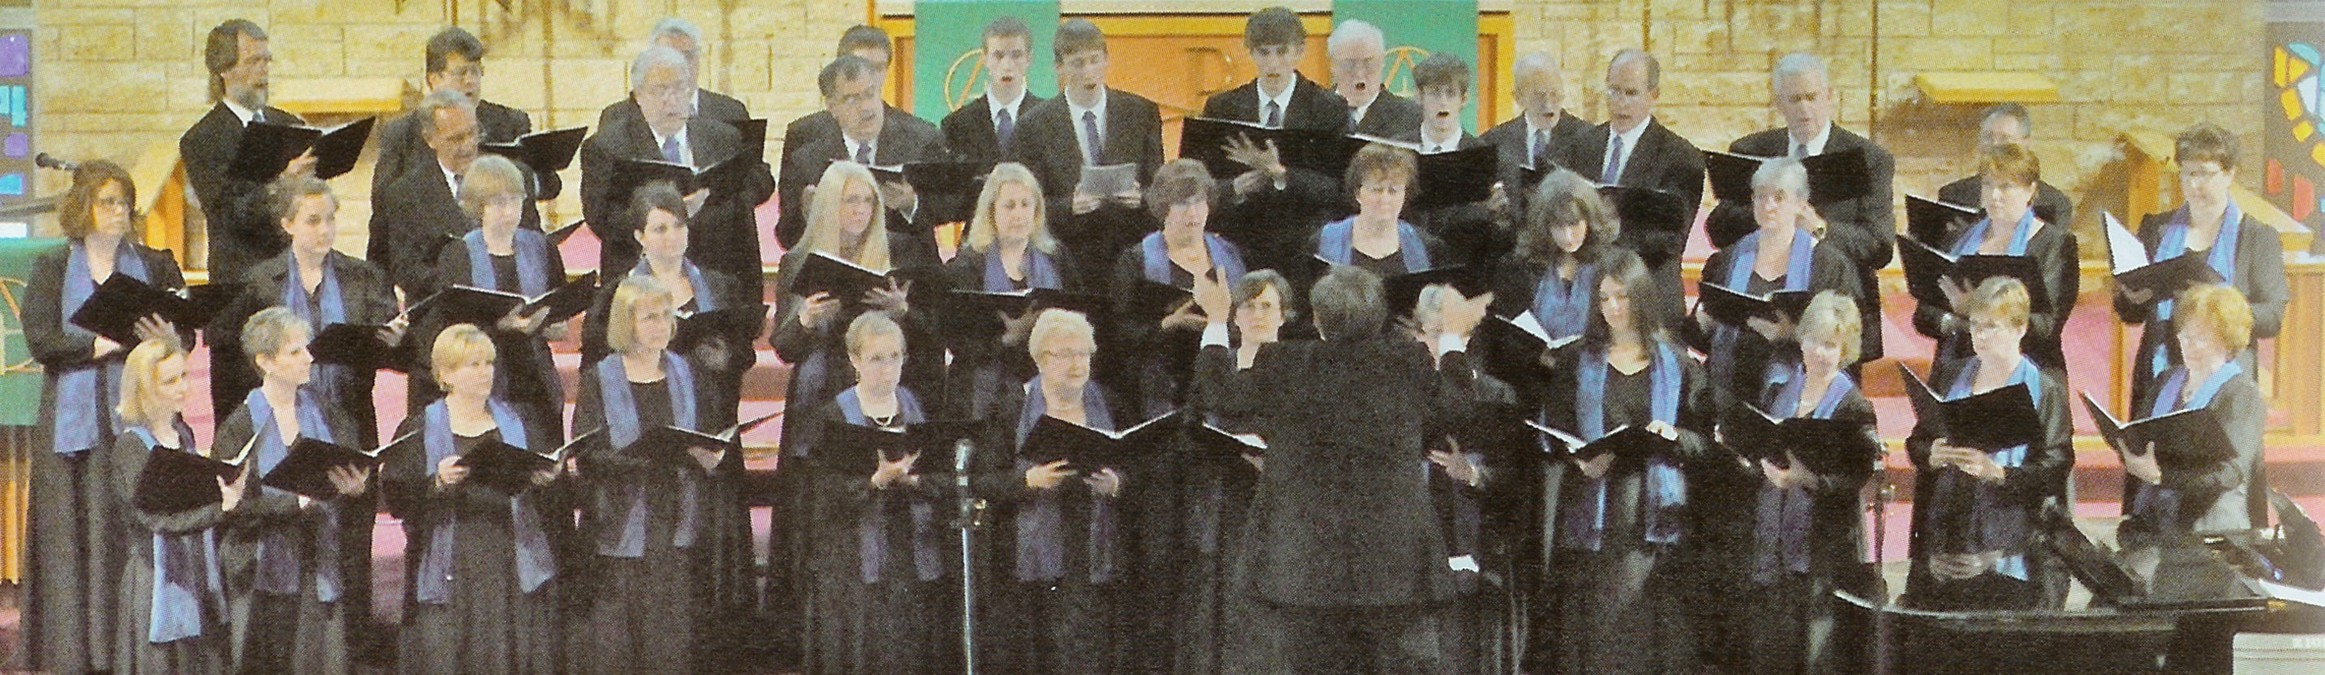 RiverChor, Clinton Iowa's Community Choir